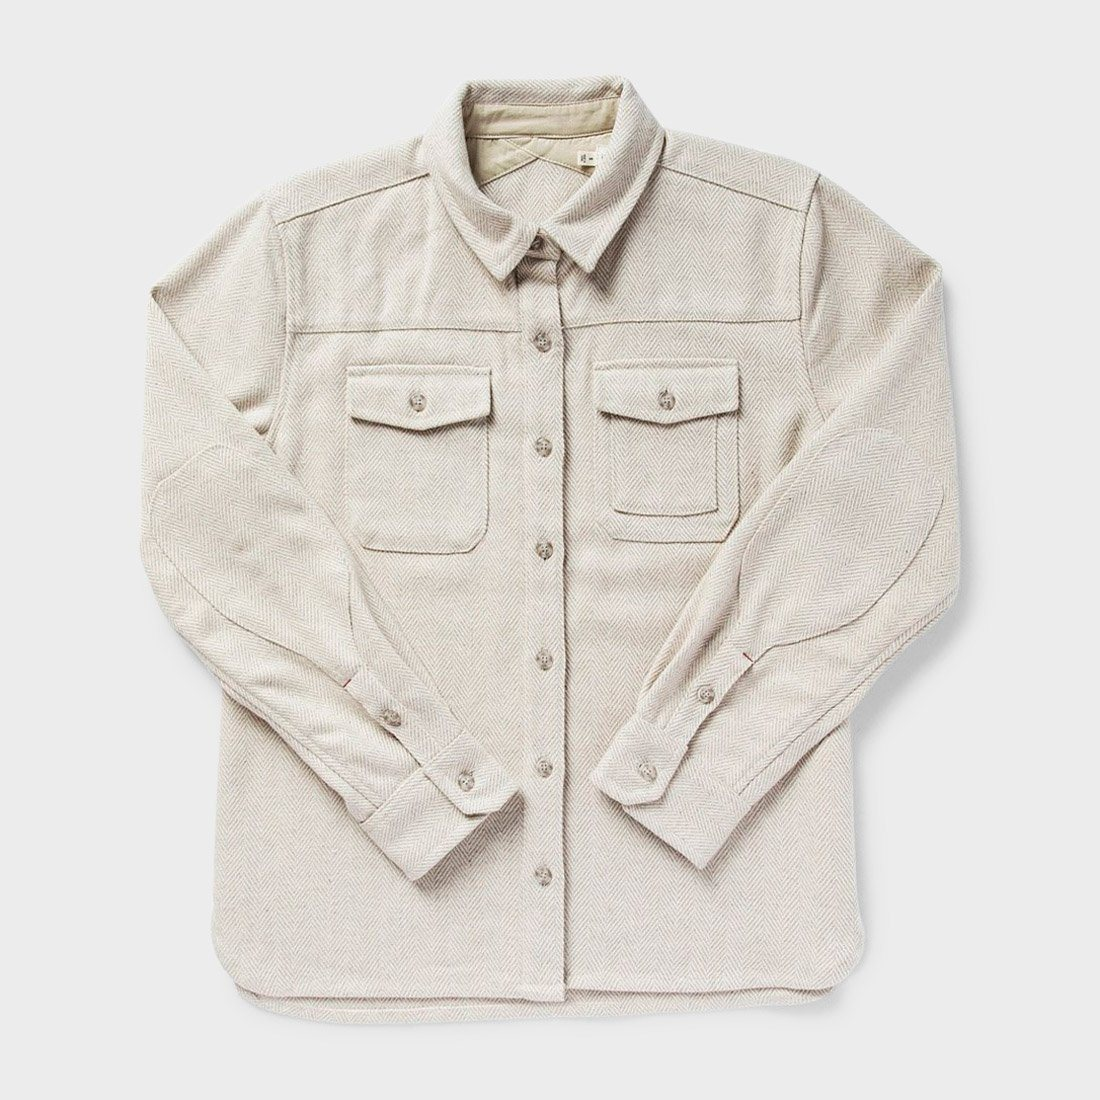 Bridge & Burn Women's Harlow Shirt Cream Herringbone